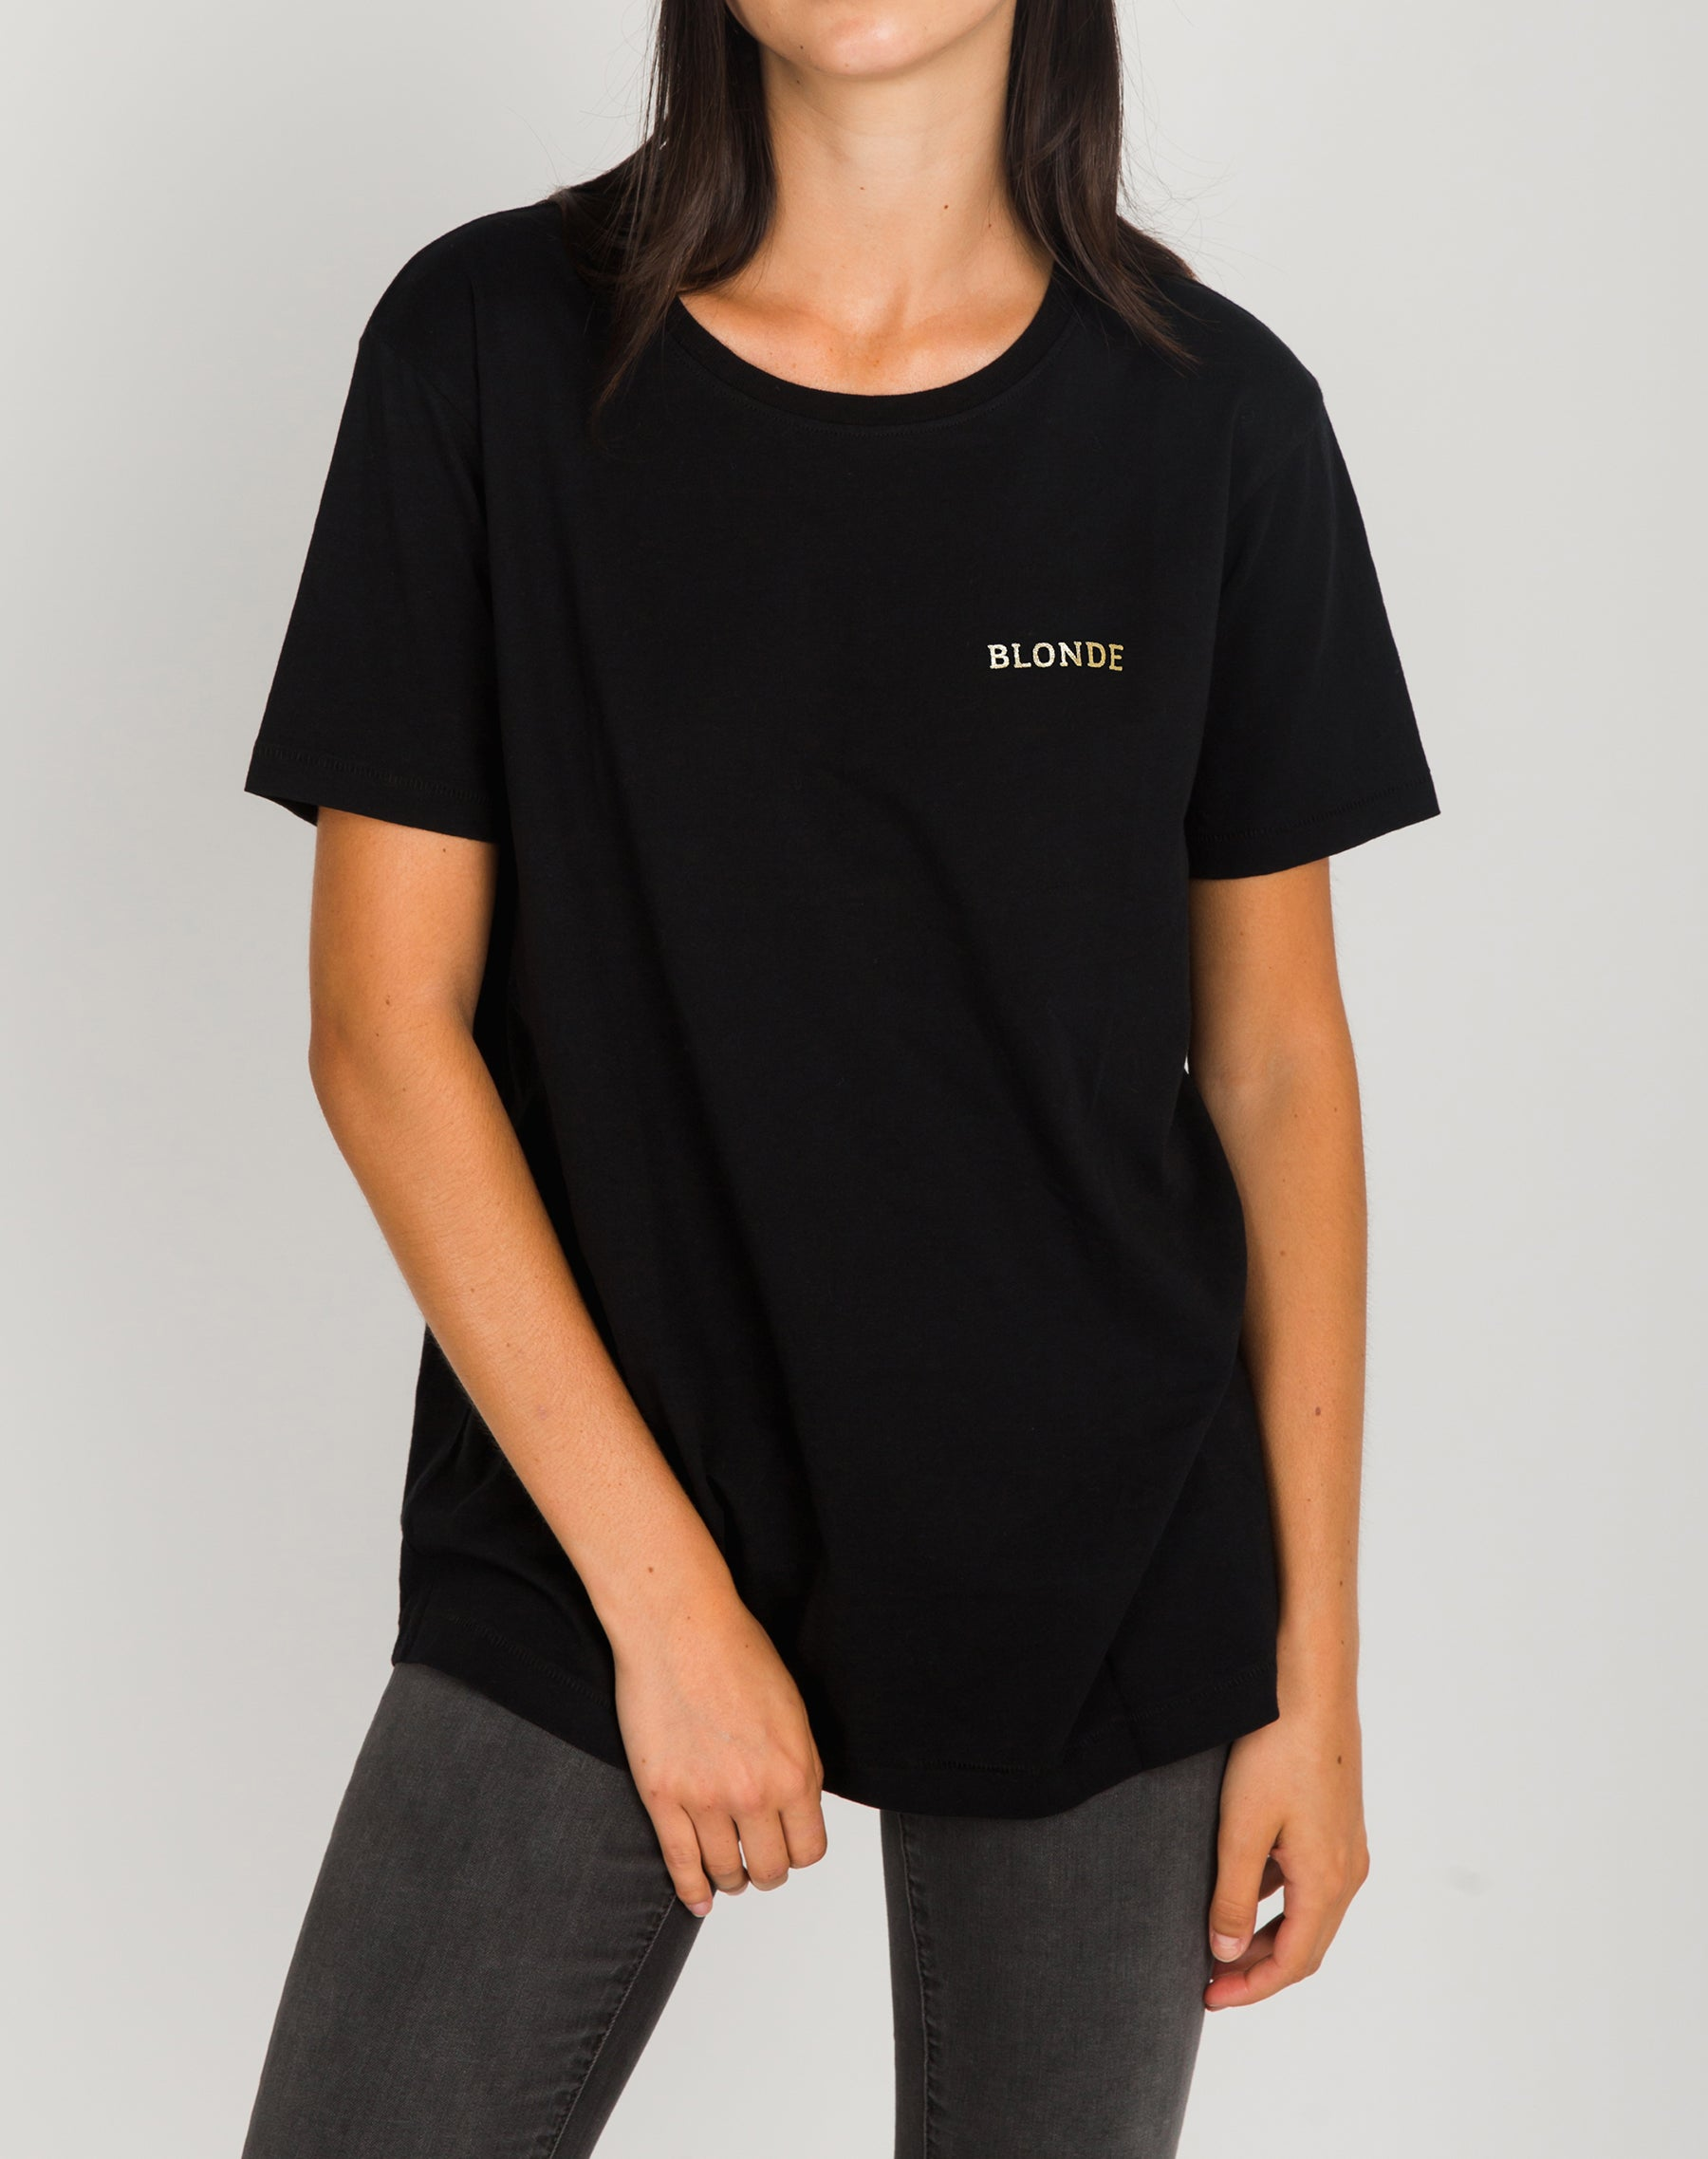 The Blonde Foil Tee Gold Foil